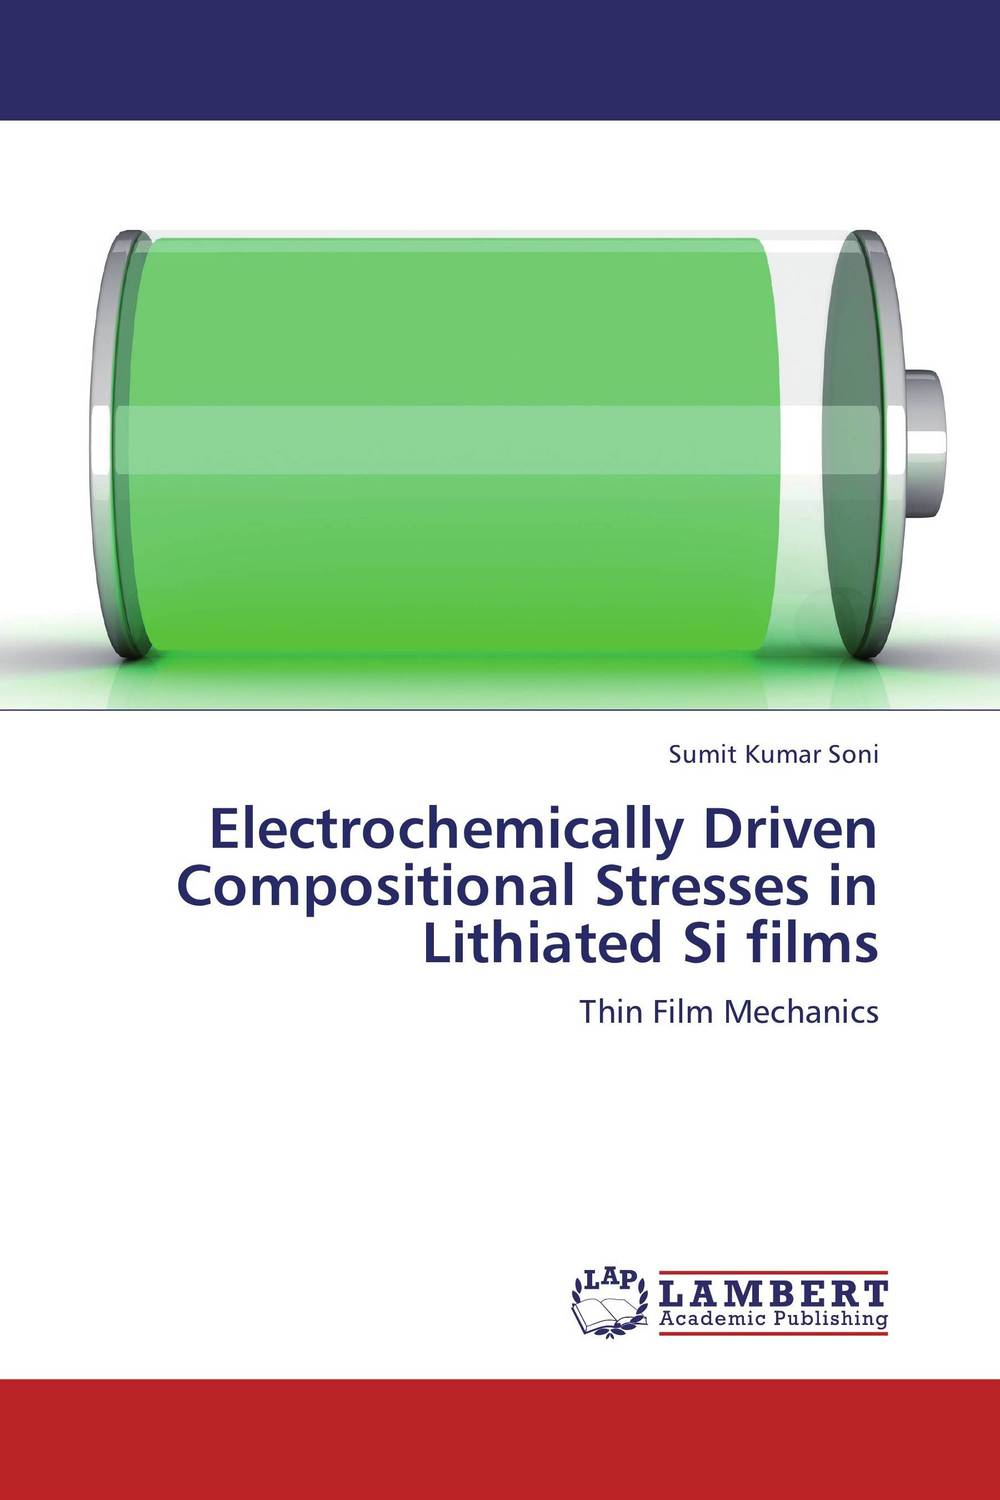 Electrochemically Driven Compositional Stresses in  Lithiated Si films driven to distraction